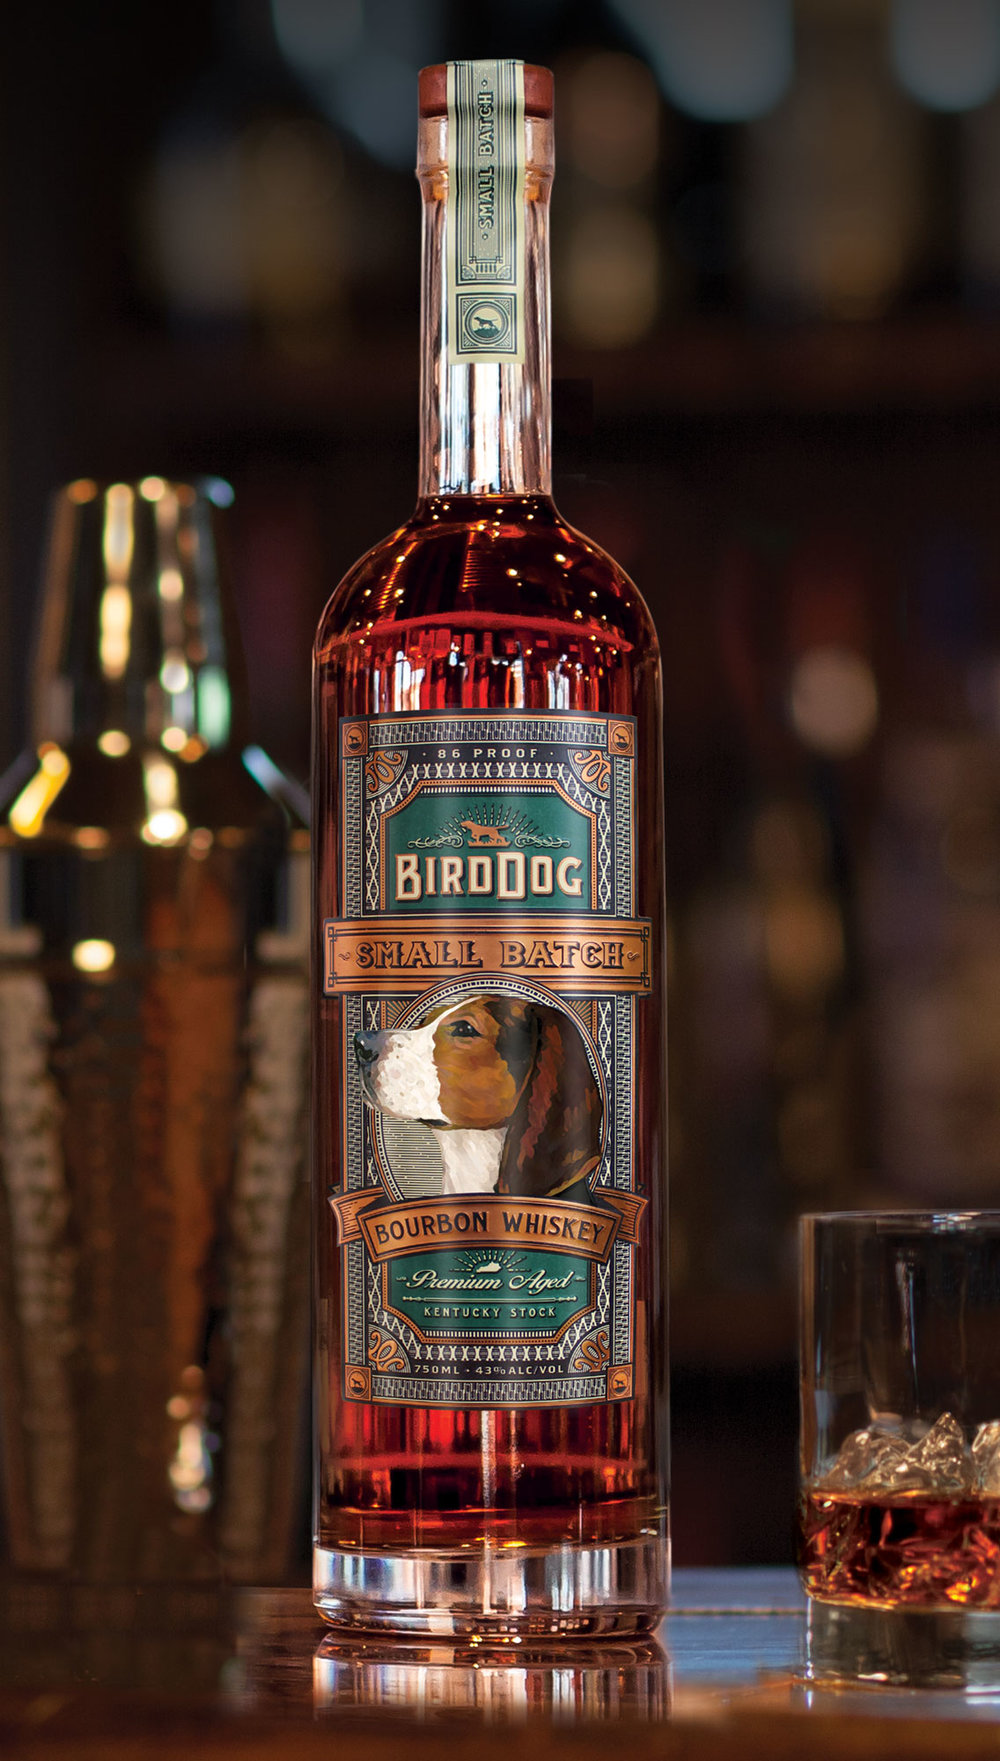 Bird Dog Small Batch Kentucky Bourbon